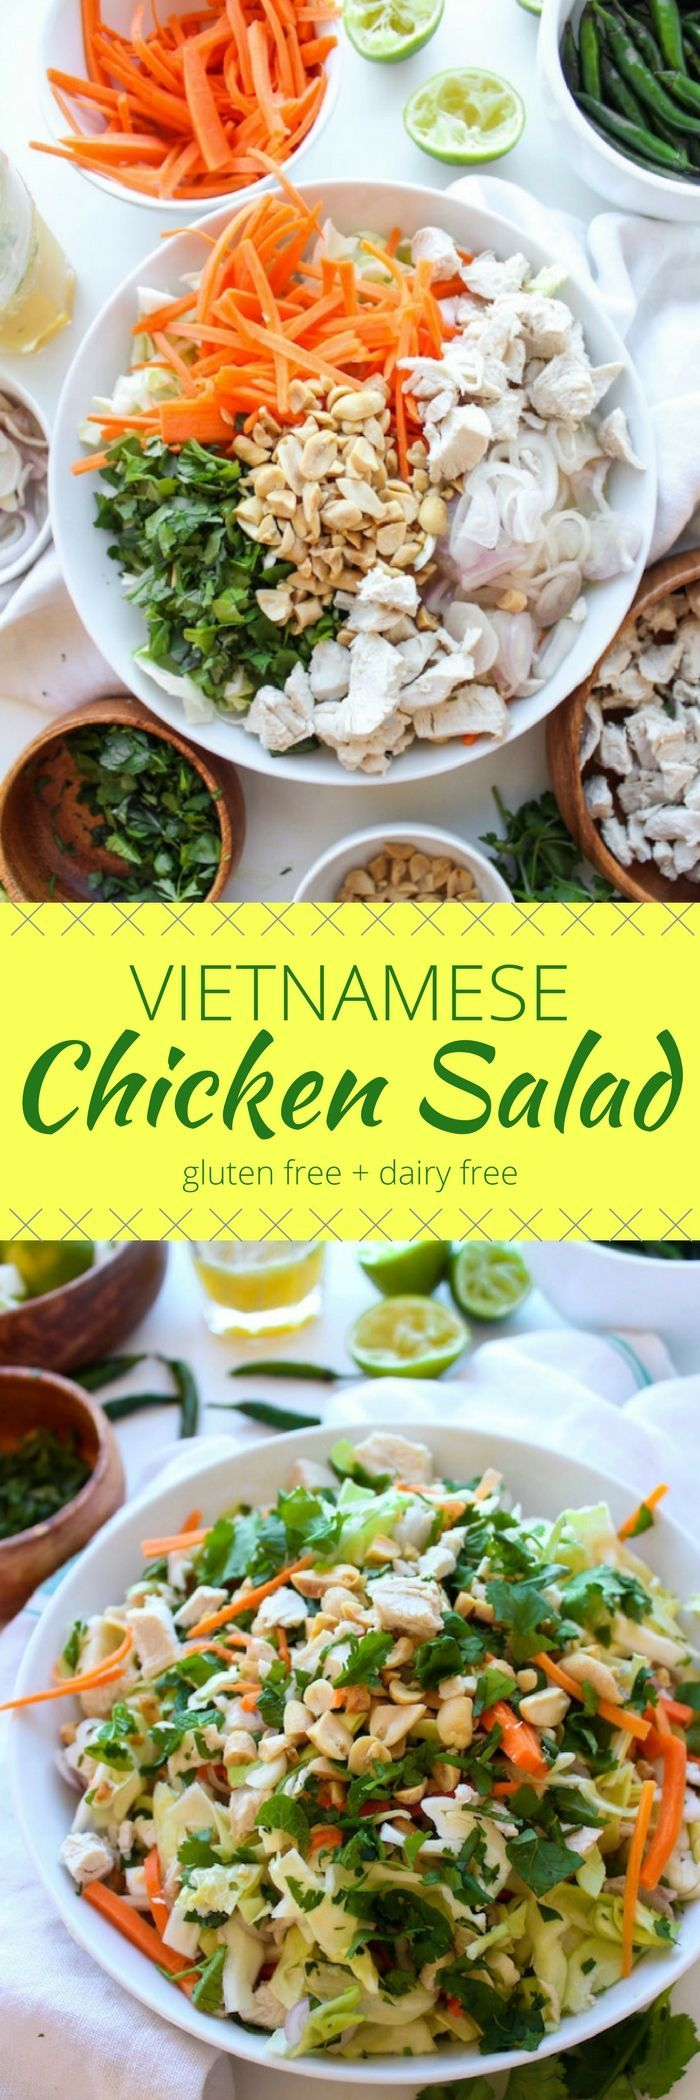 Vietnamese Chicken Salad with poached or leftover chicken, cabbage, carrots, fresh herbs and a tangy chili lime dressing. Gluten Free